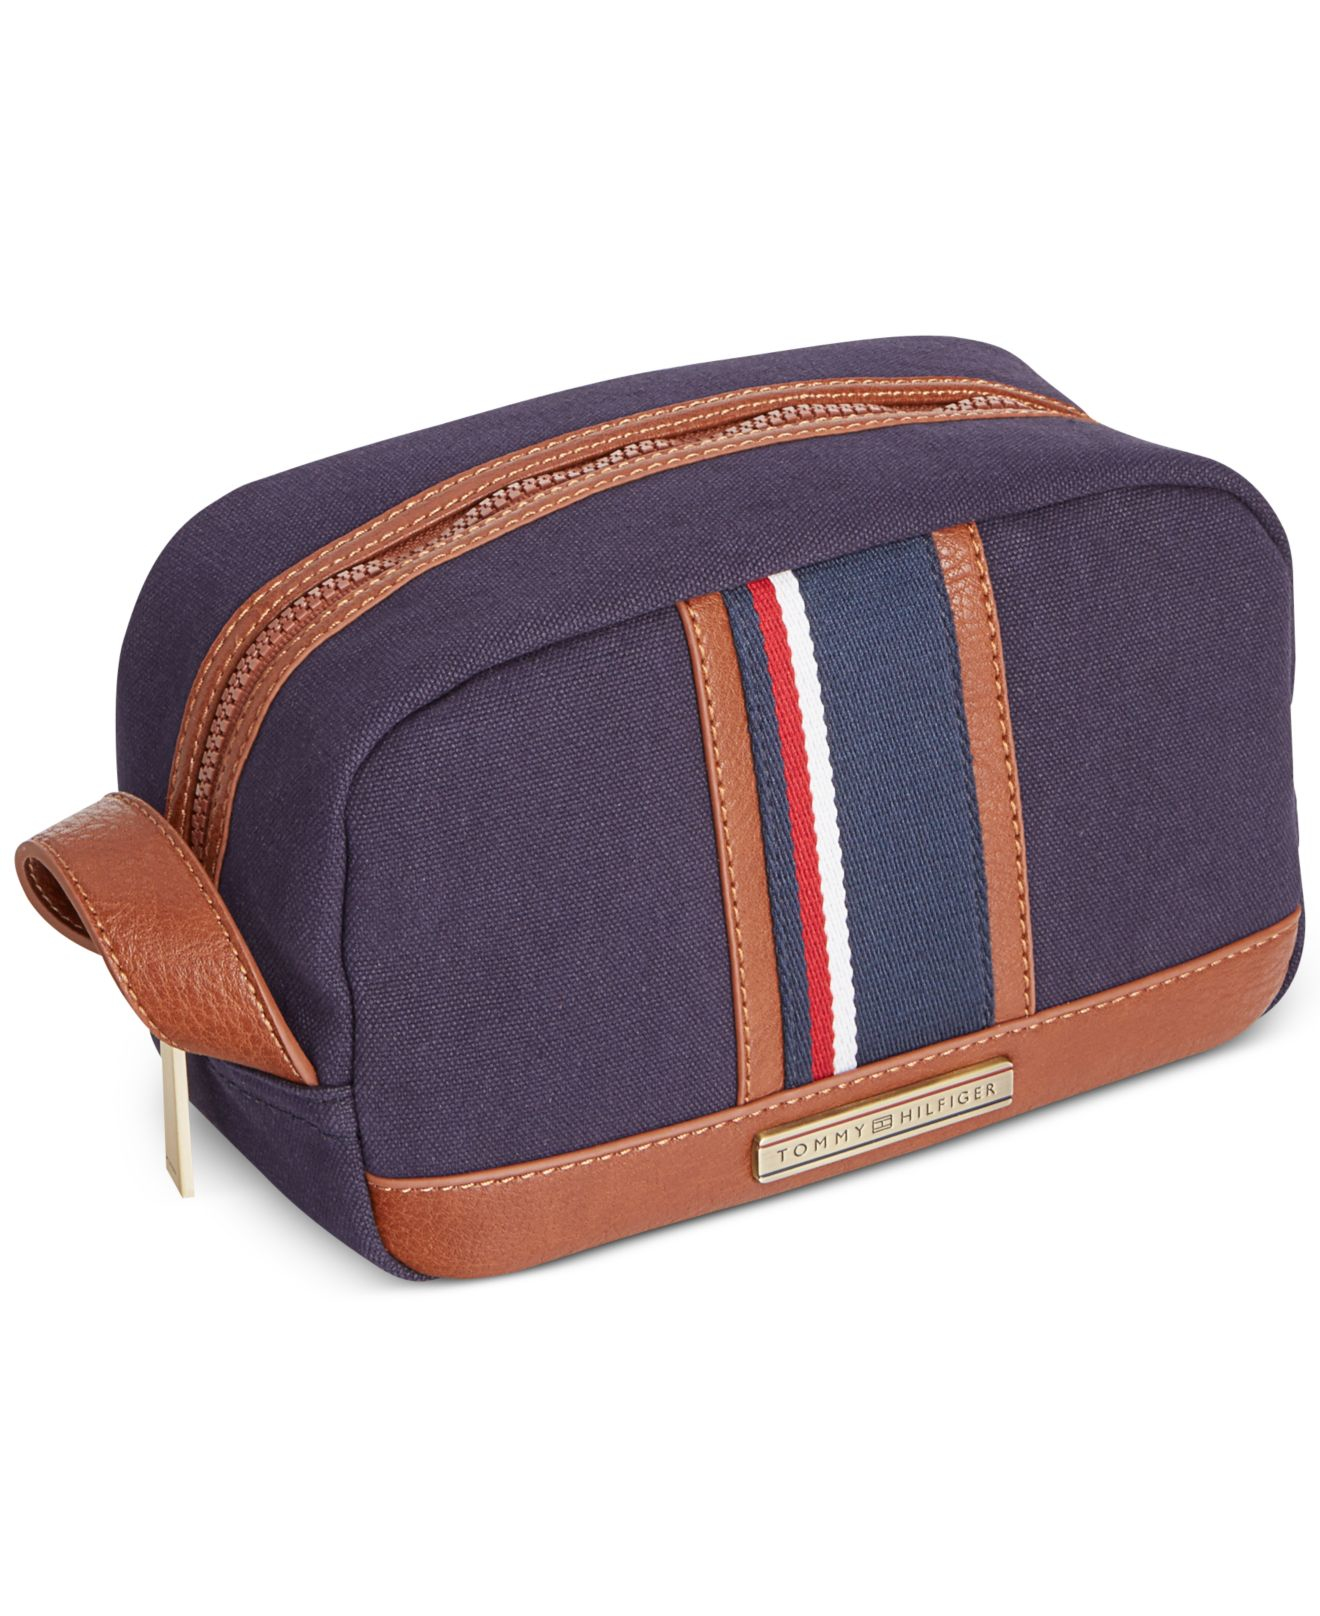 Lyst - Tommy Hilfiger Connor Dopp Kit in Blue for Men 974a8f344a48a